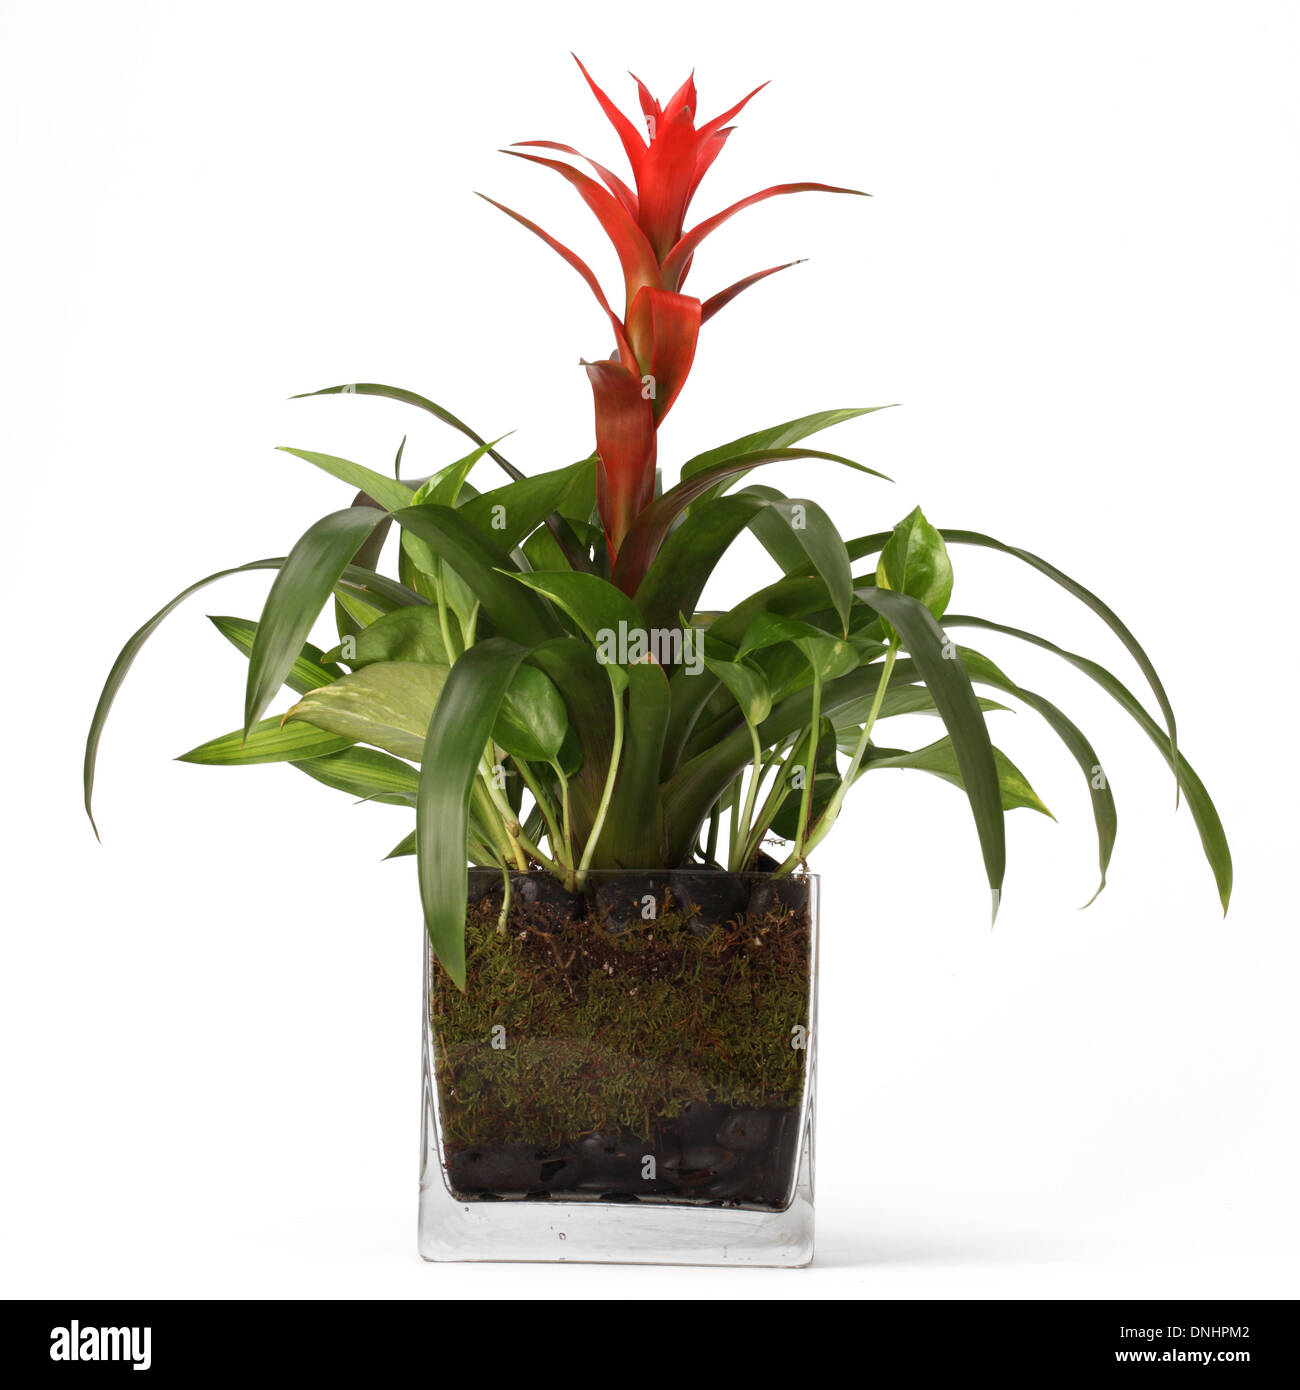 A green plant with red flower in a container on a white background - Stock Image